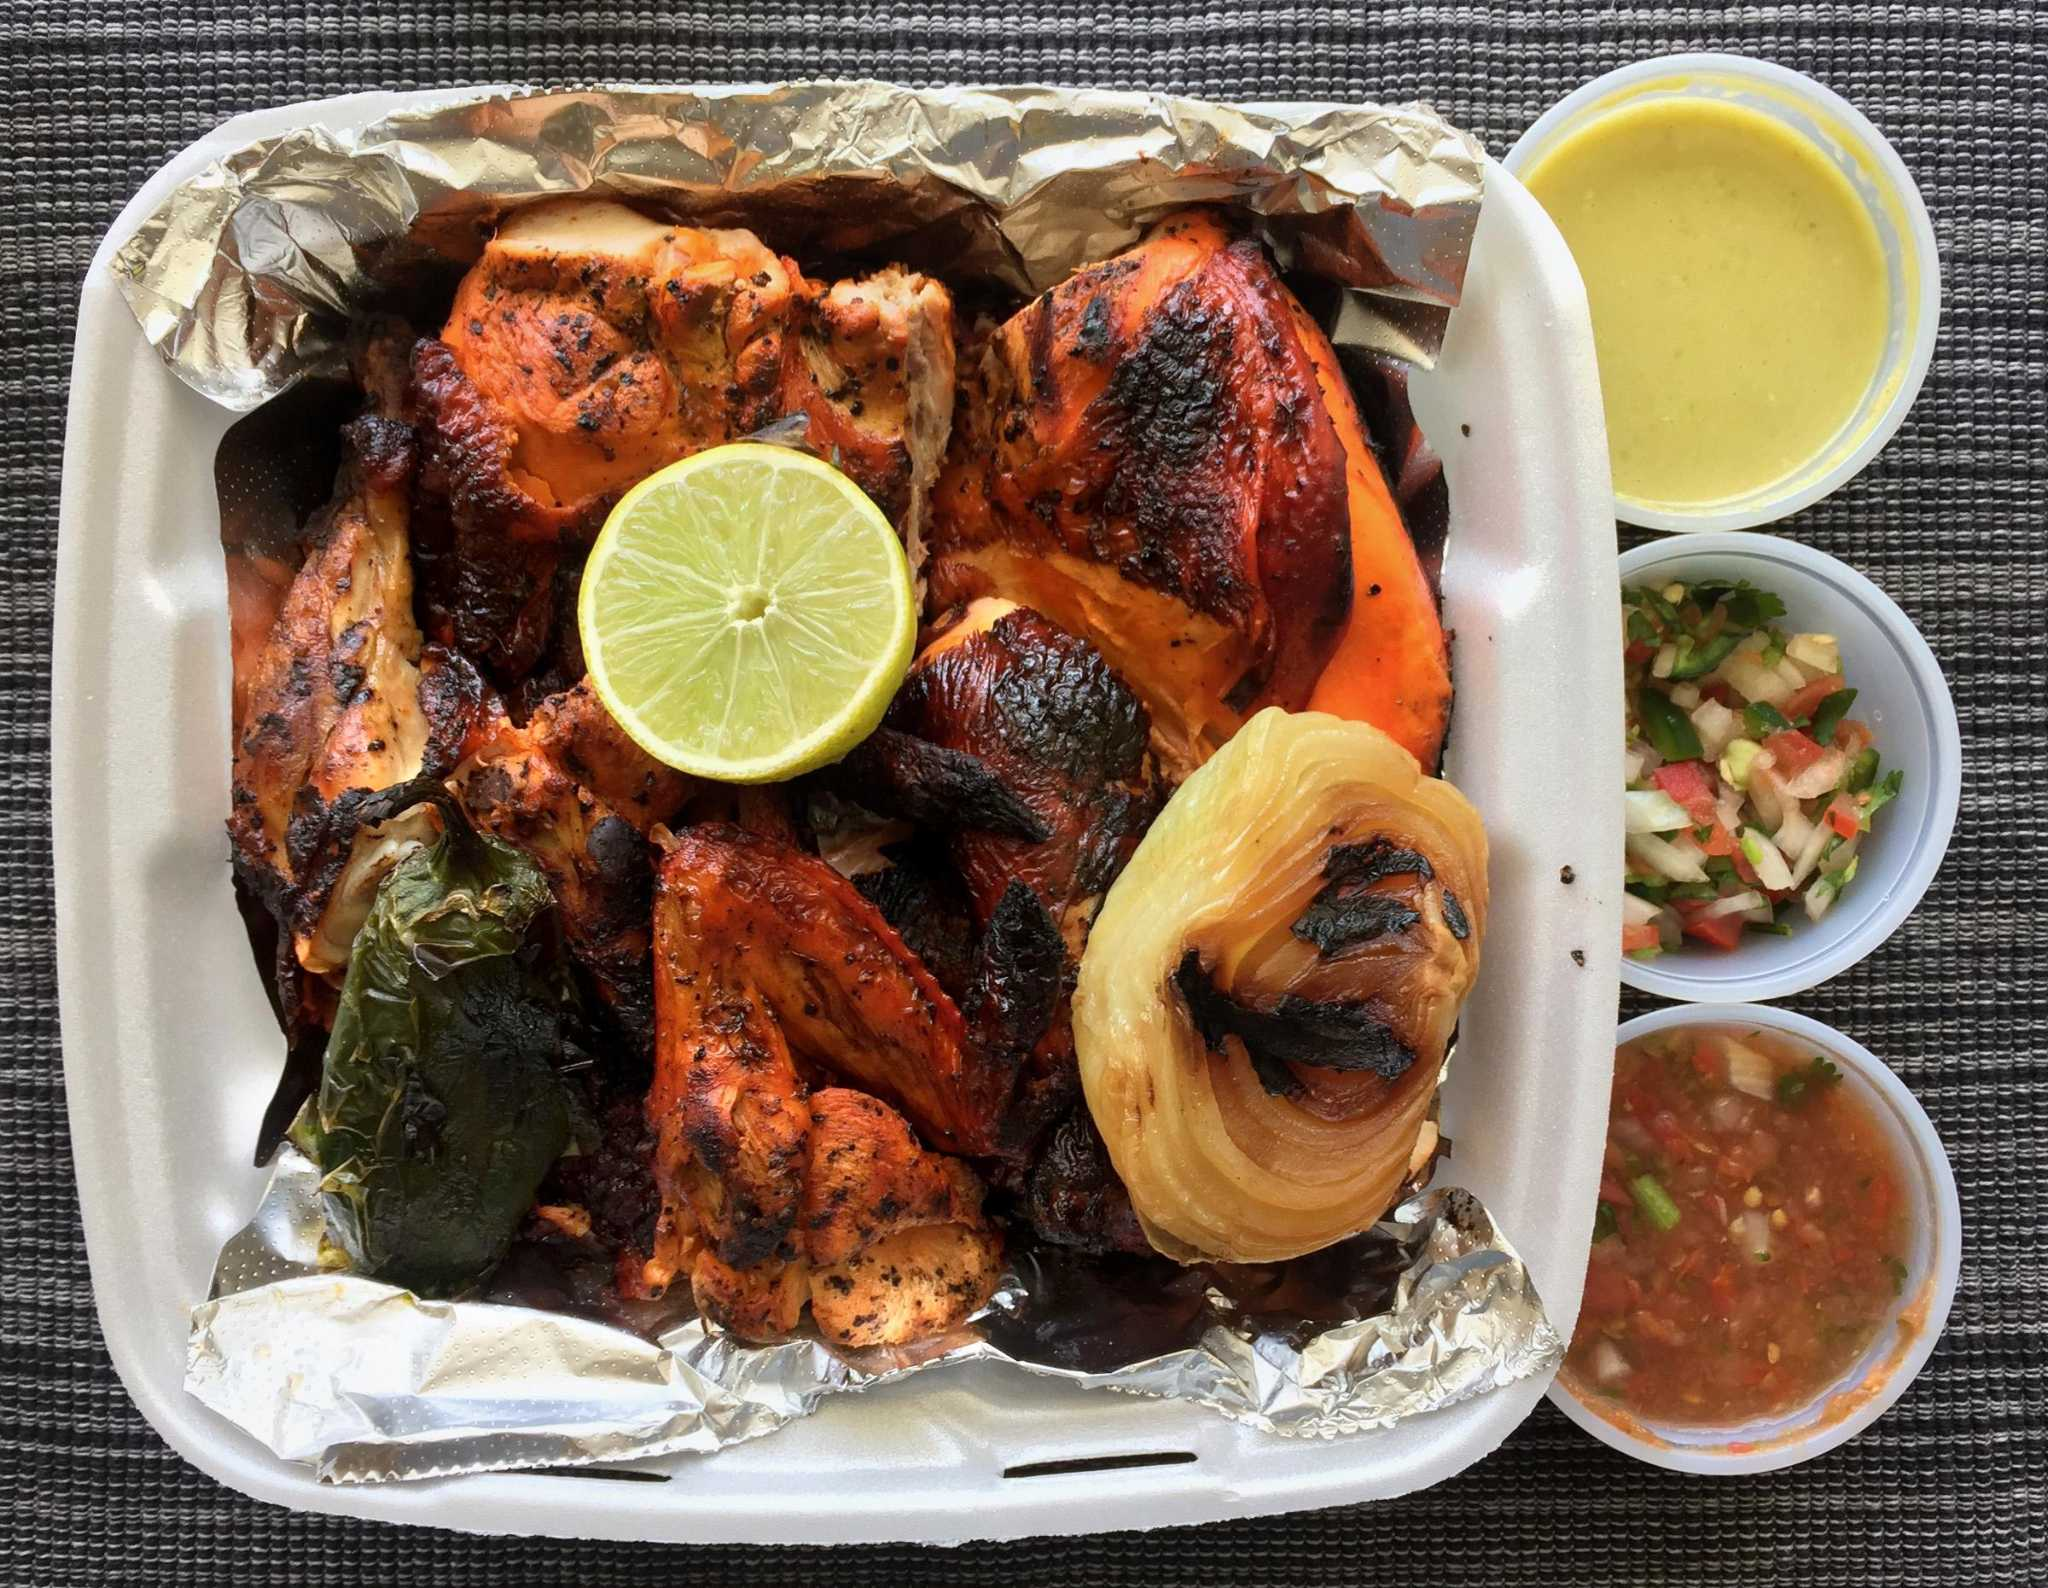 The Top 10 Pollos Asados Roasted Chicken Places In San